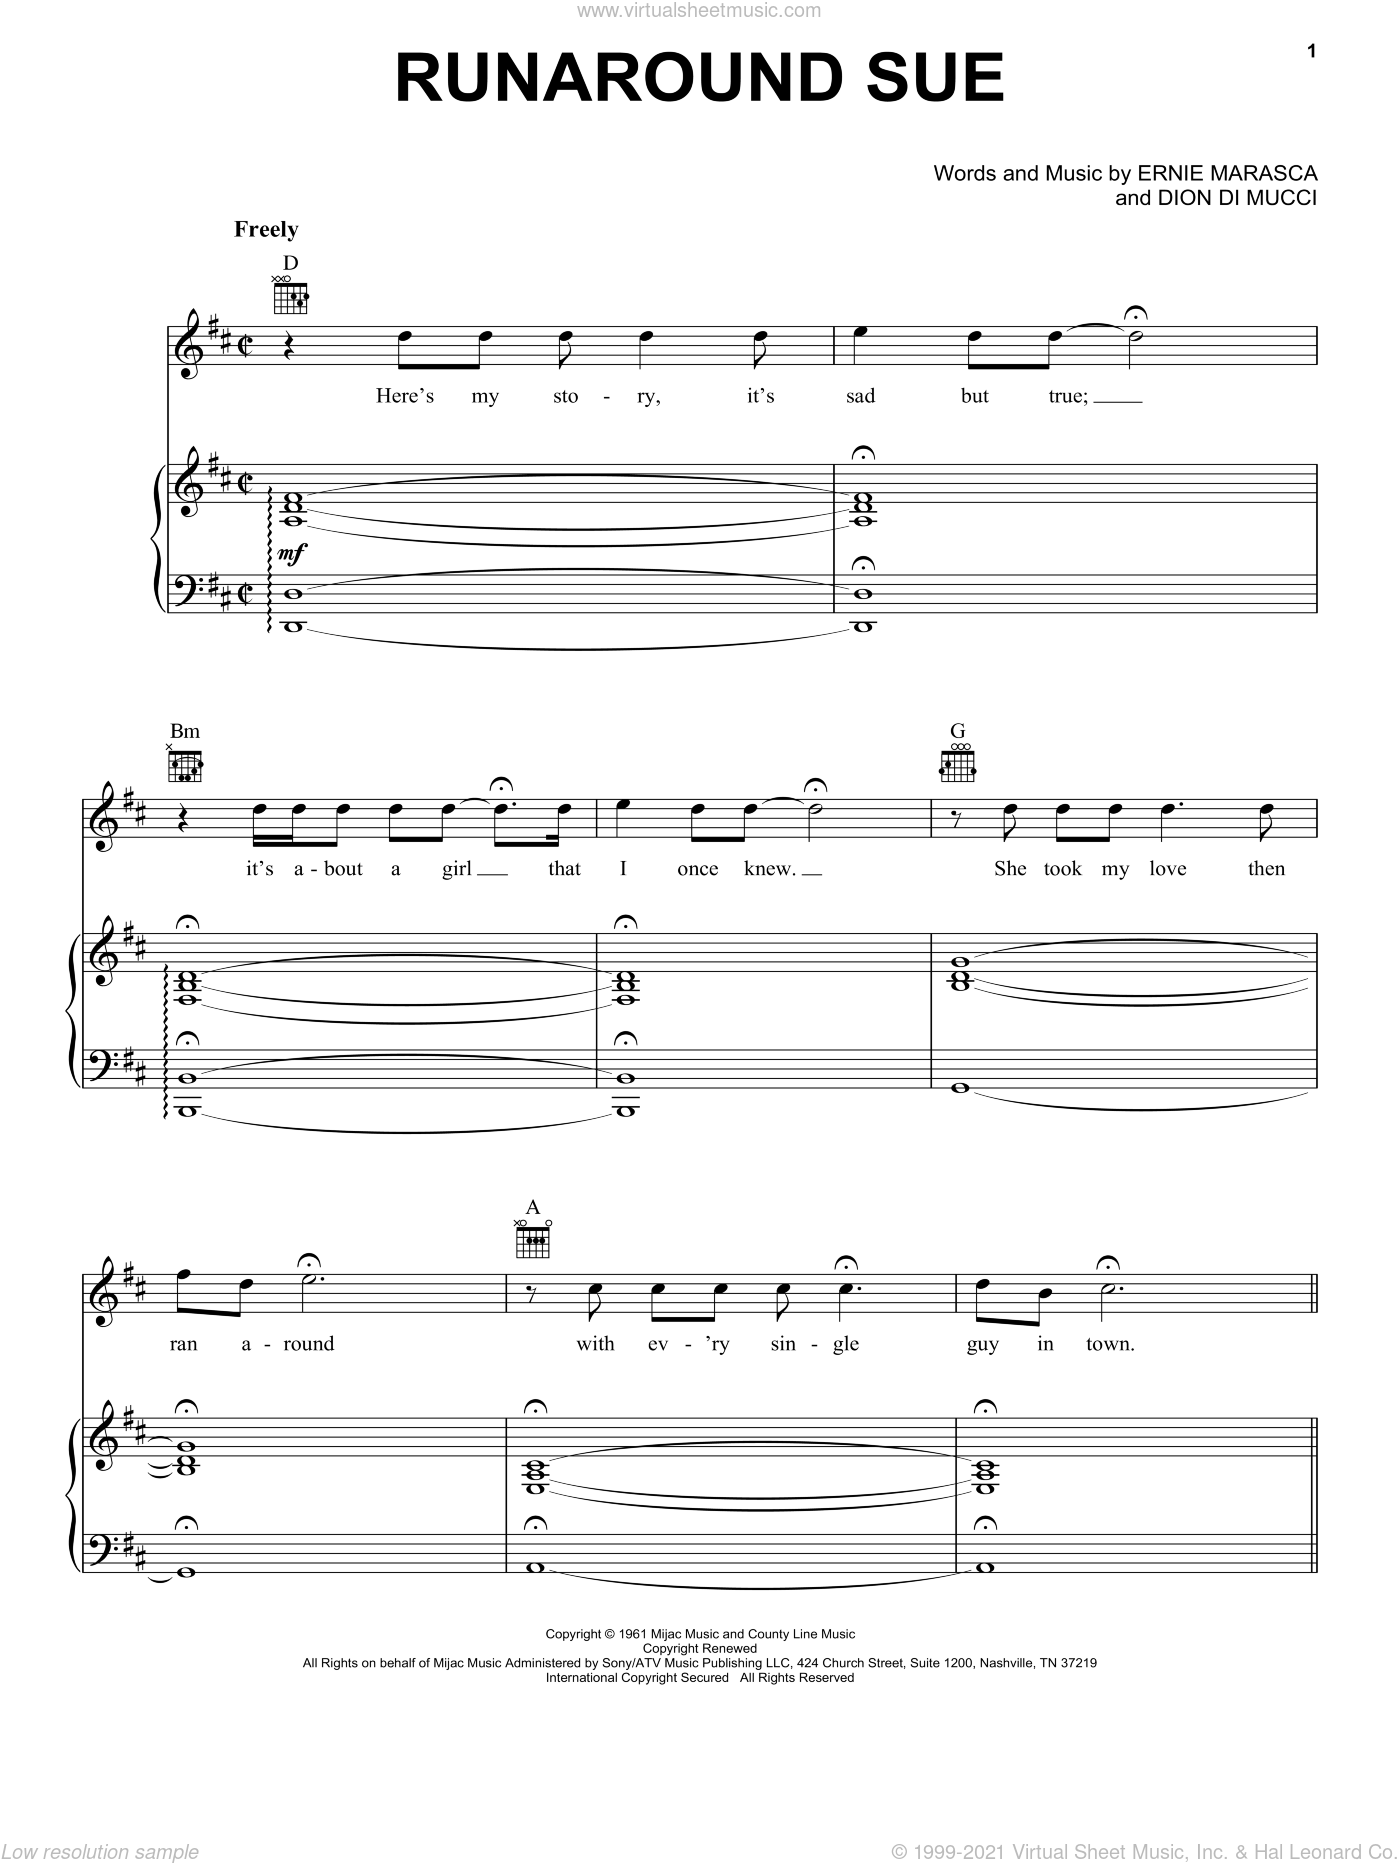 Dion - Runaround Sue sheet music for voice, piano or guitar [PDF]